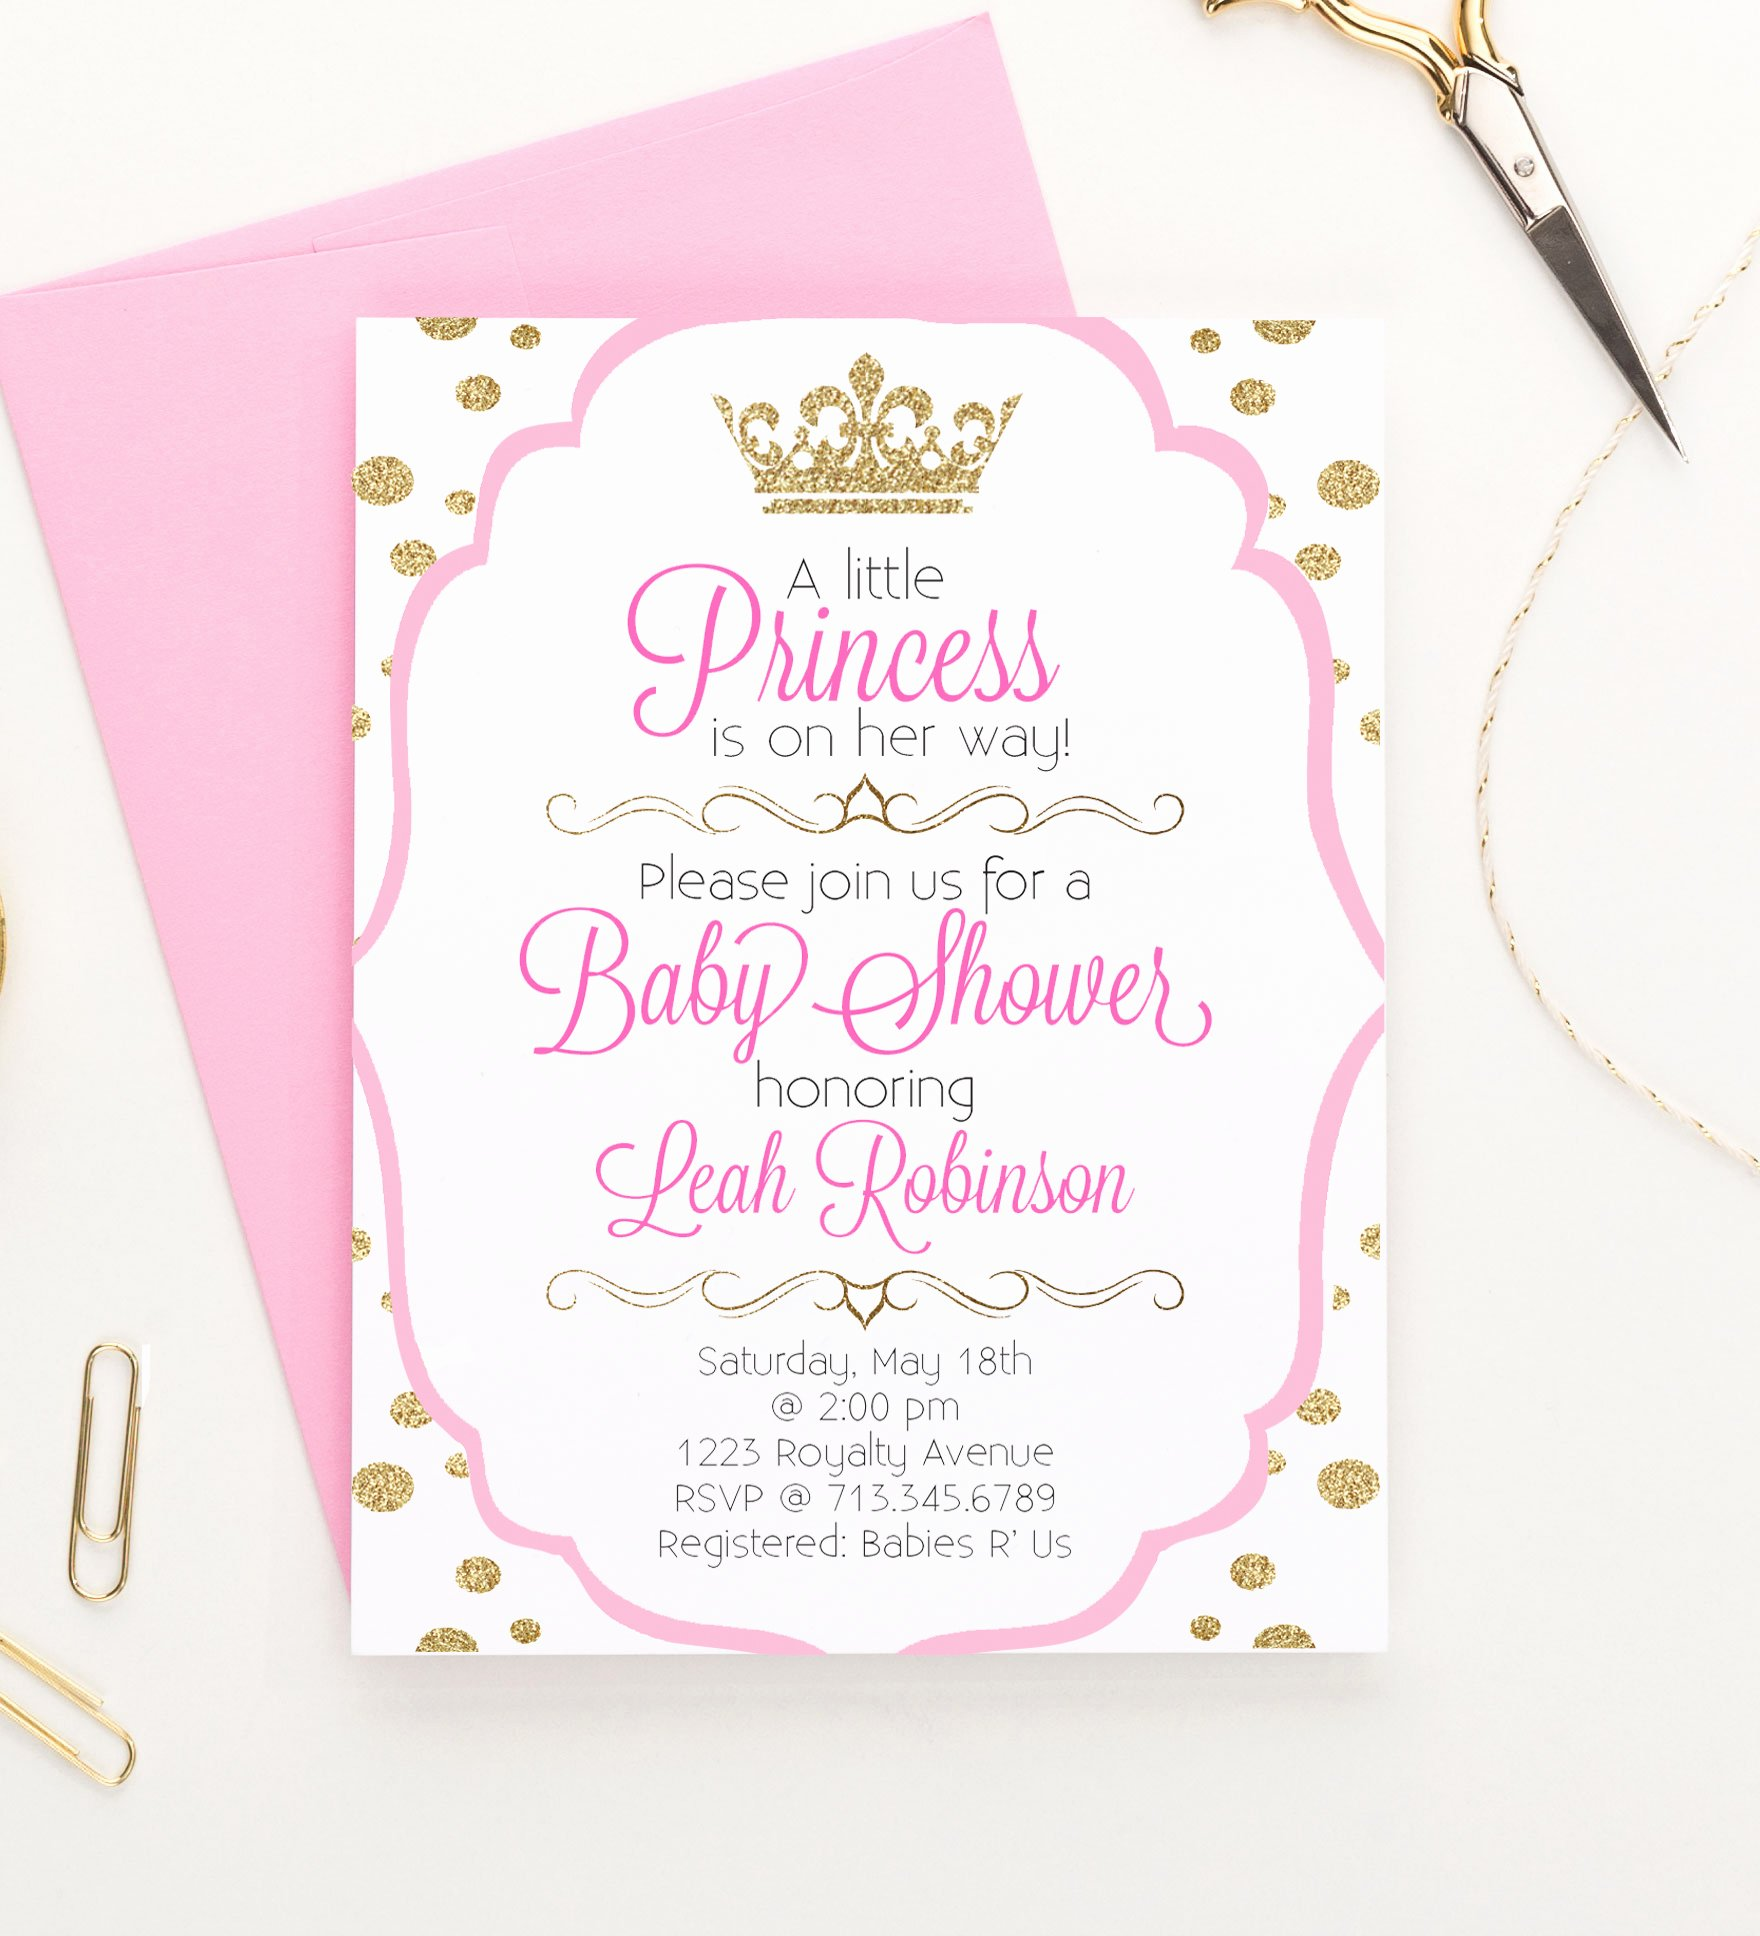 Princess Baby Shower Invitations Fresh Princess Baby Shower Invitations Little Princess Baby